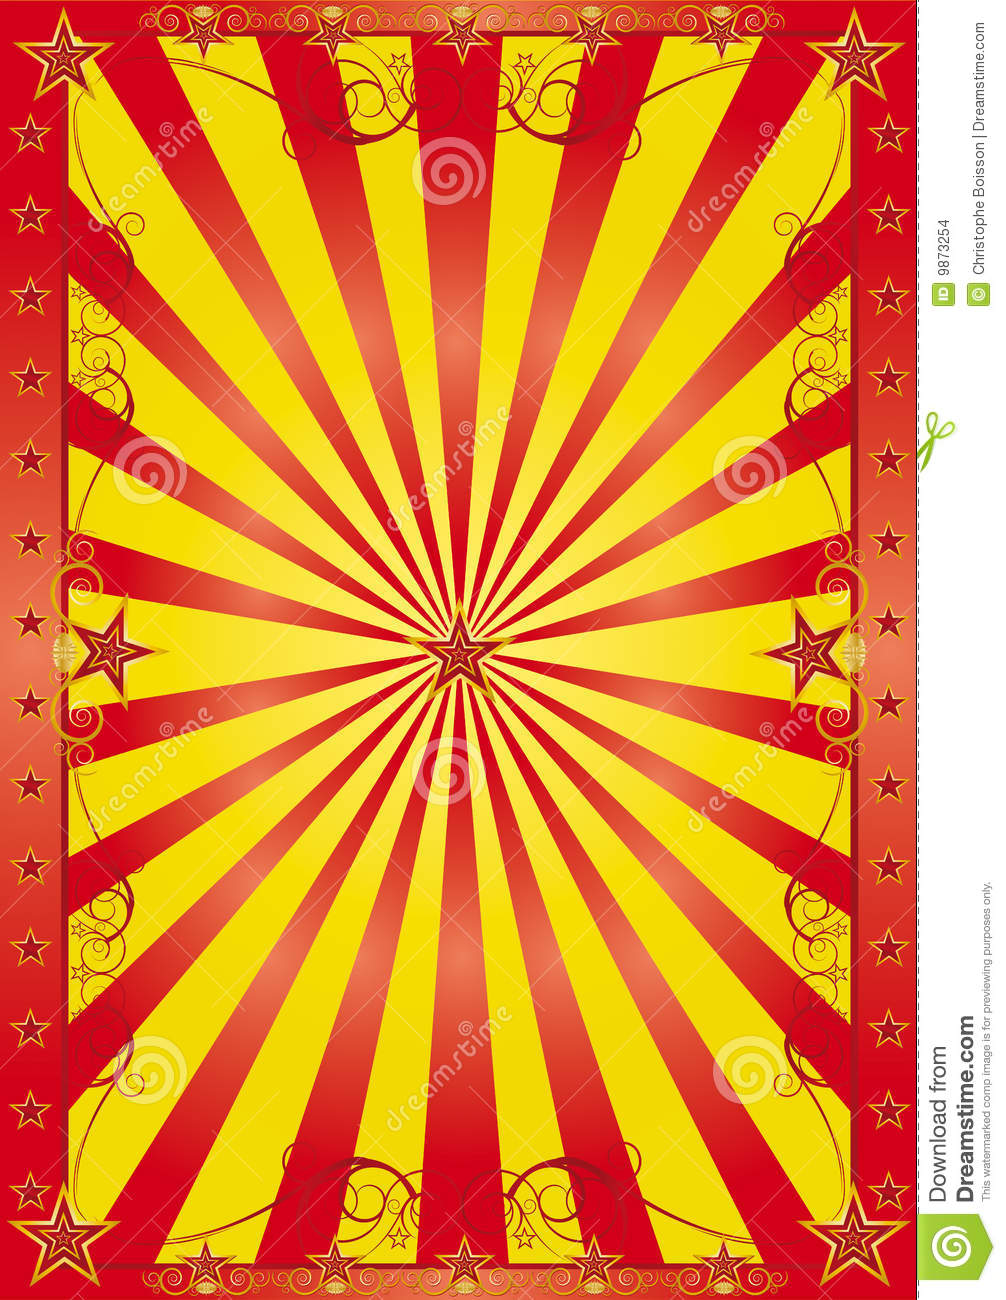 Download image Circus Background PC, Android, iPhone and iPad ...